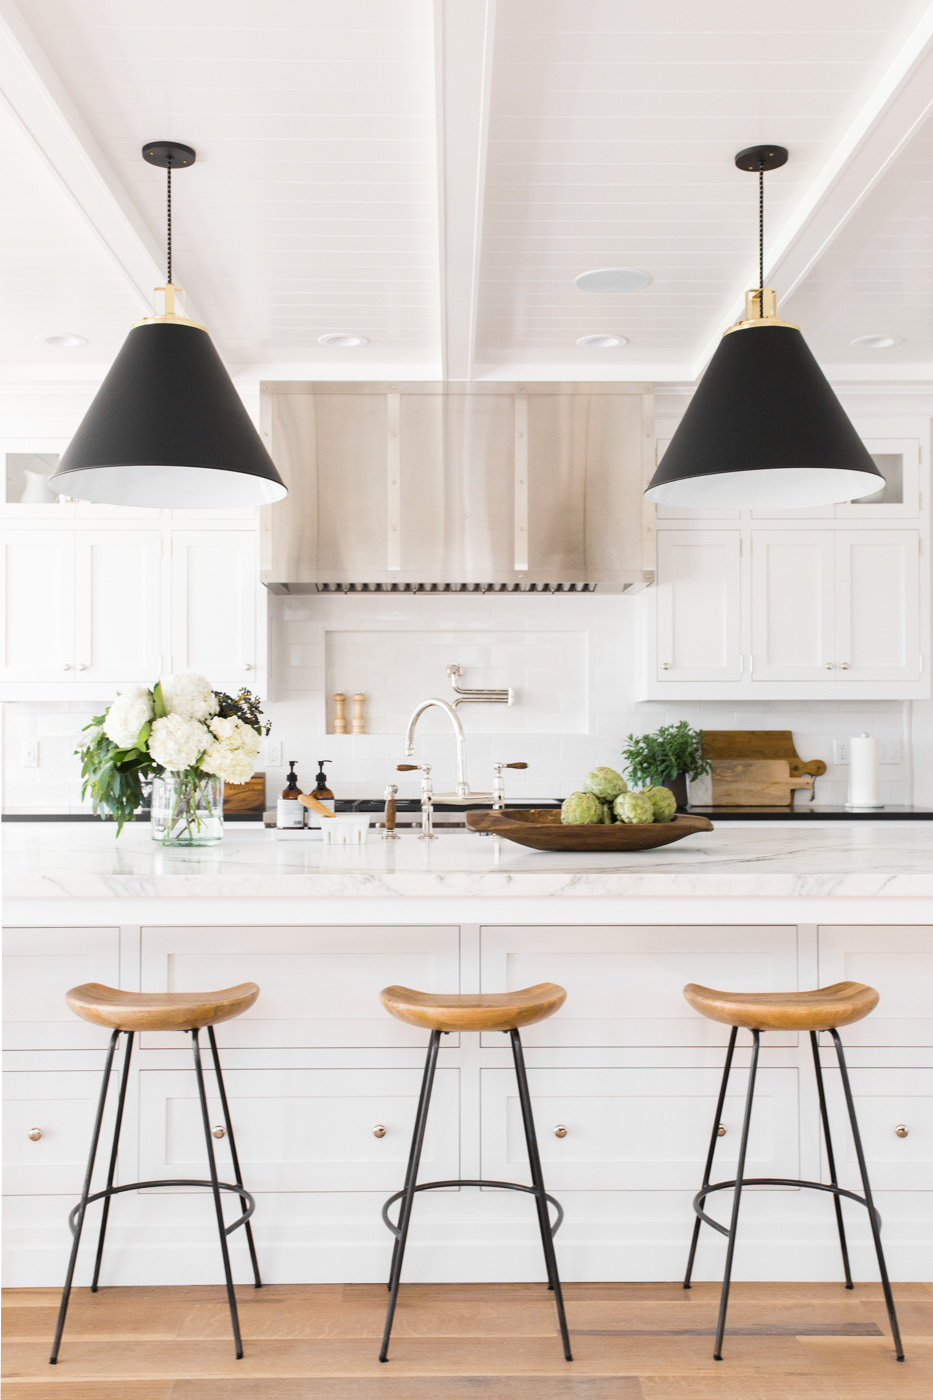 Kitchen+remodel+by+Studio+McGee+||+marble+counters,+black+cone+pendants,+stainless+hood.jpg